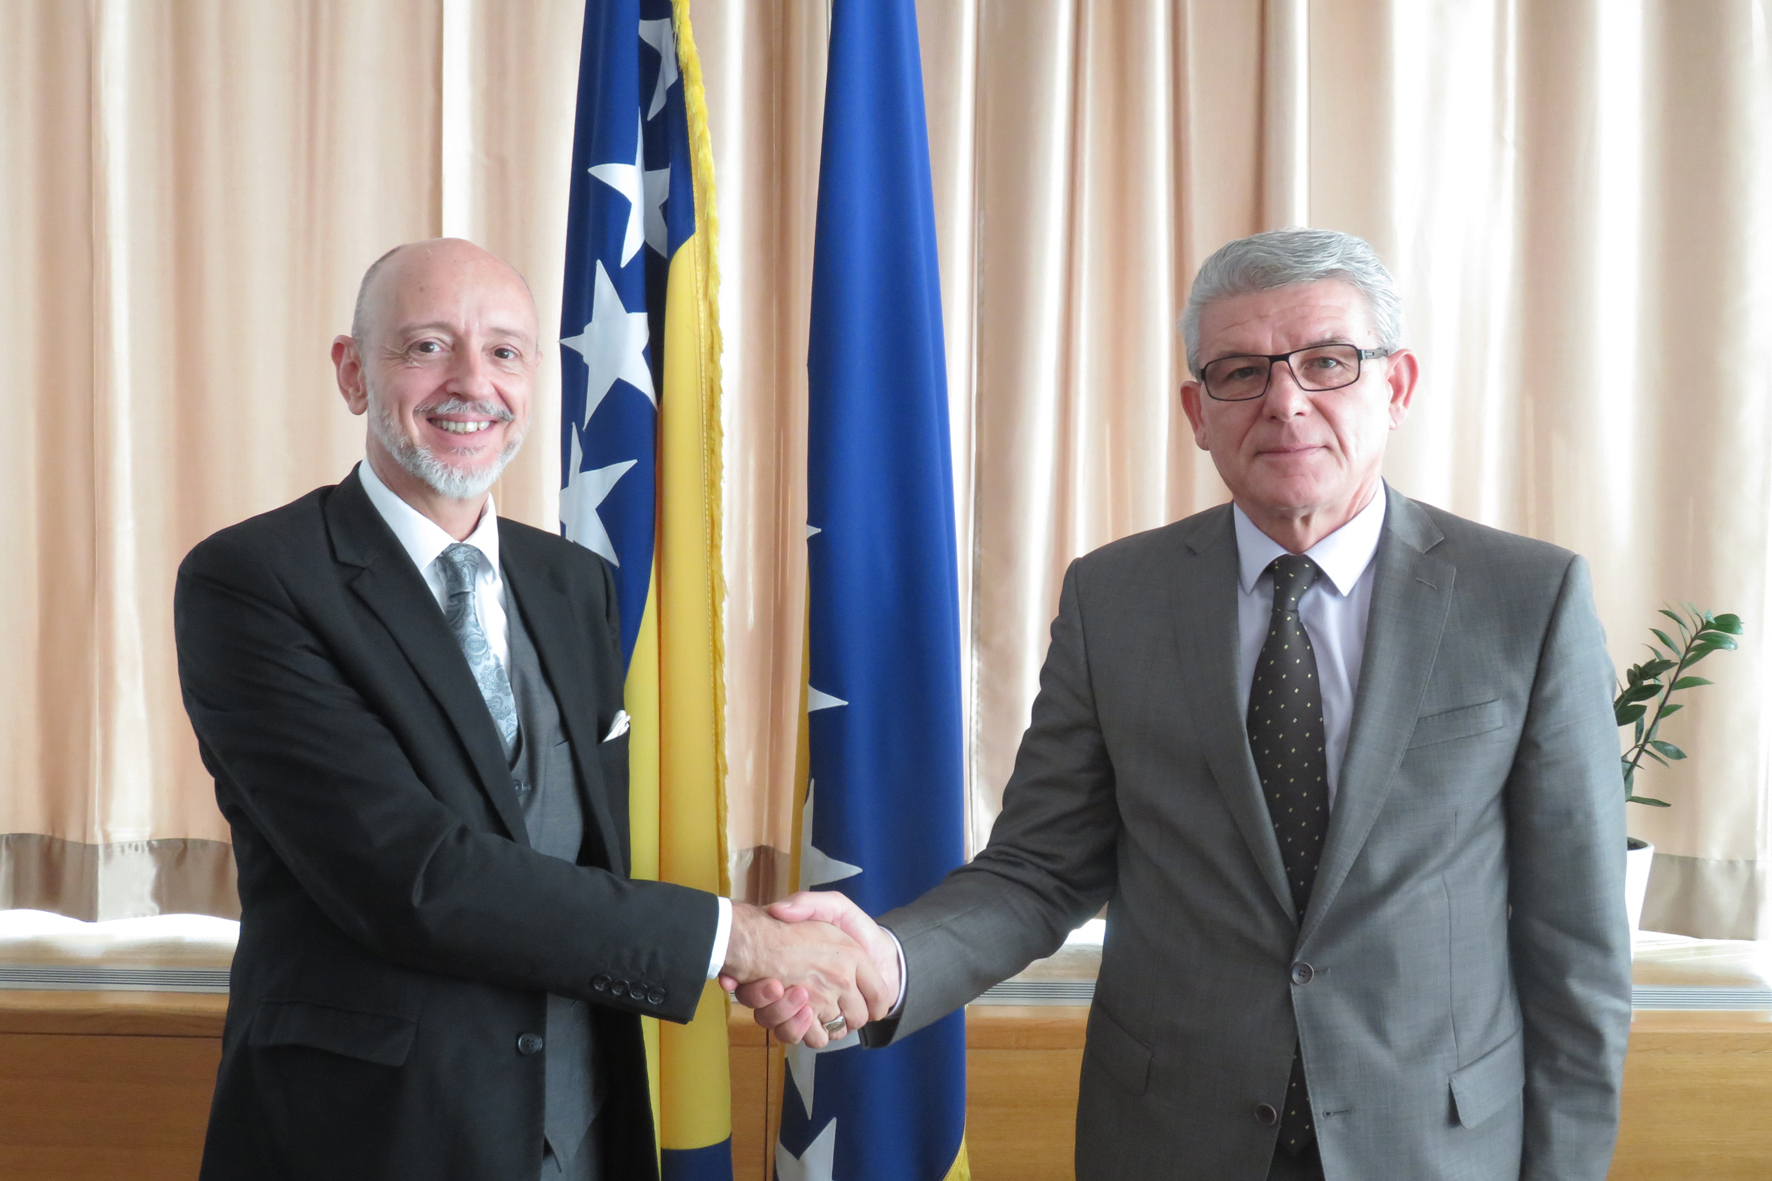 Deputy Speaker of the House of Representatives of the Parliamentary Assembly of BiH, Šefik Džaferović received non-resident Ambassador of the Republic of Argentina to BiH in the inaugural visit